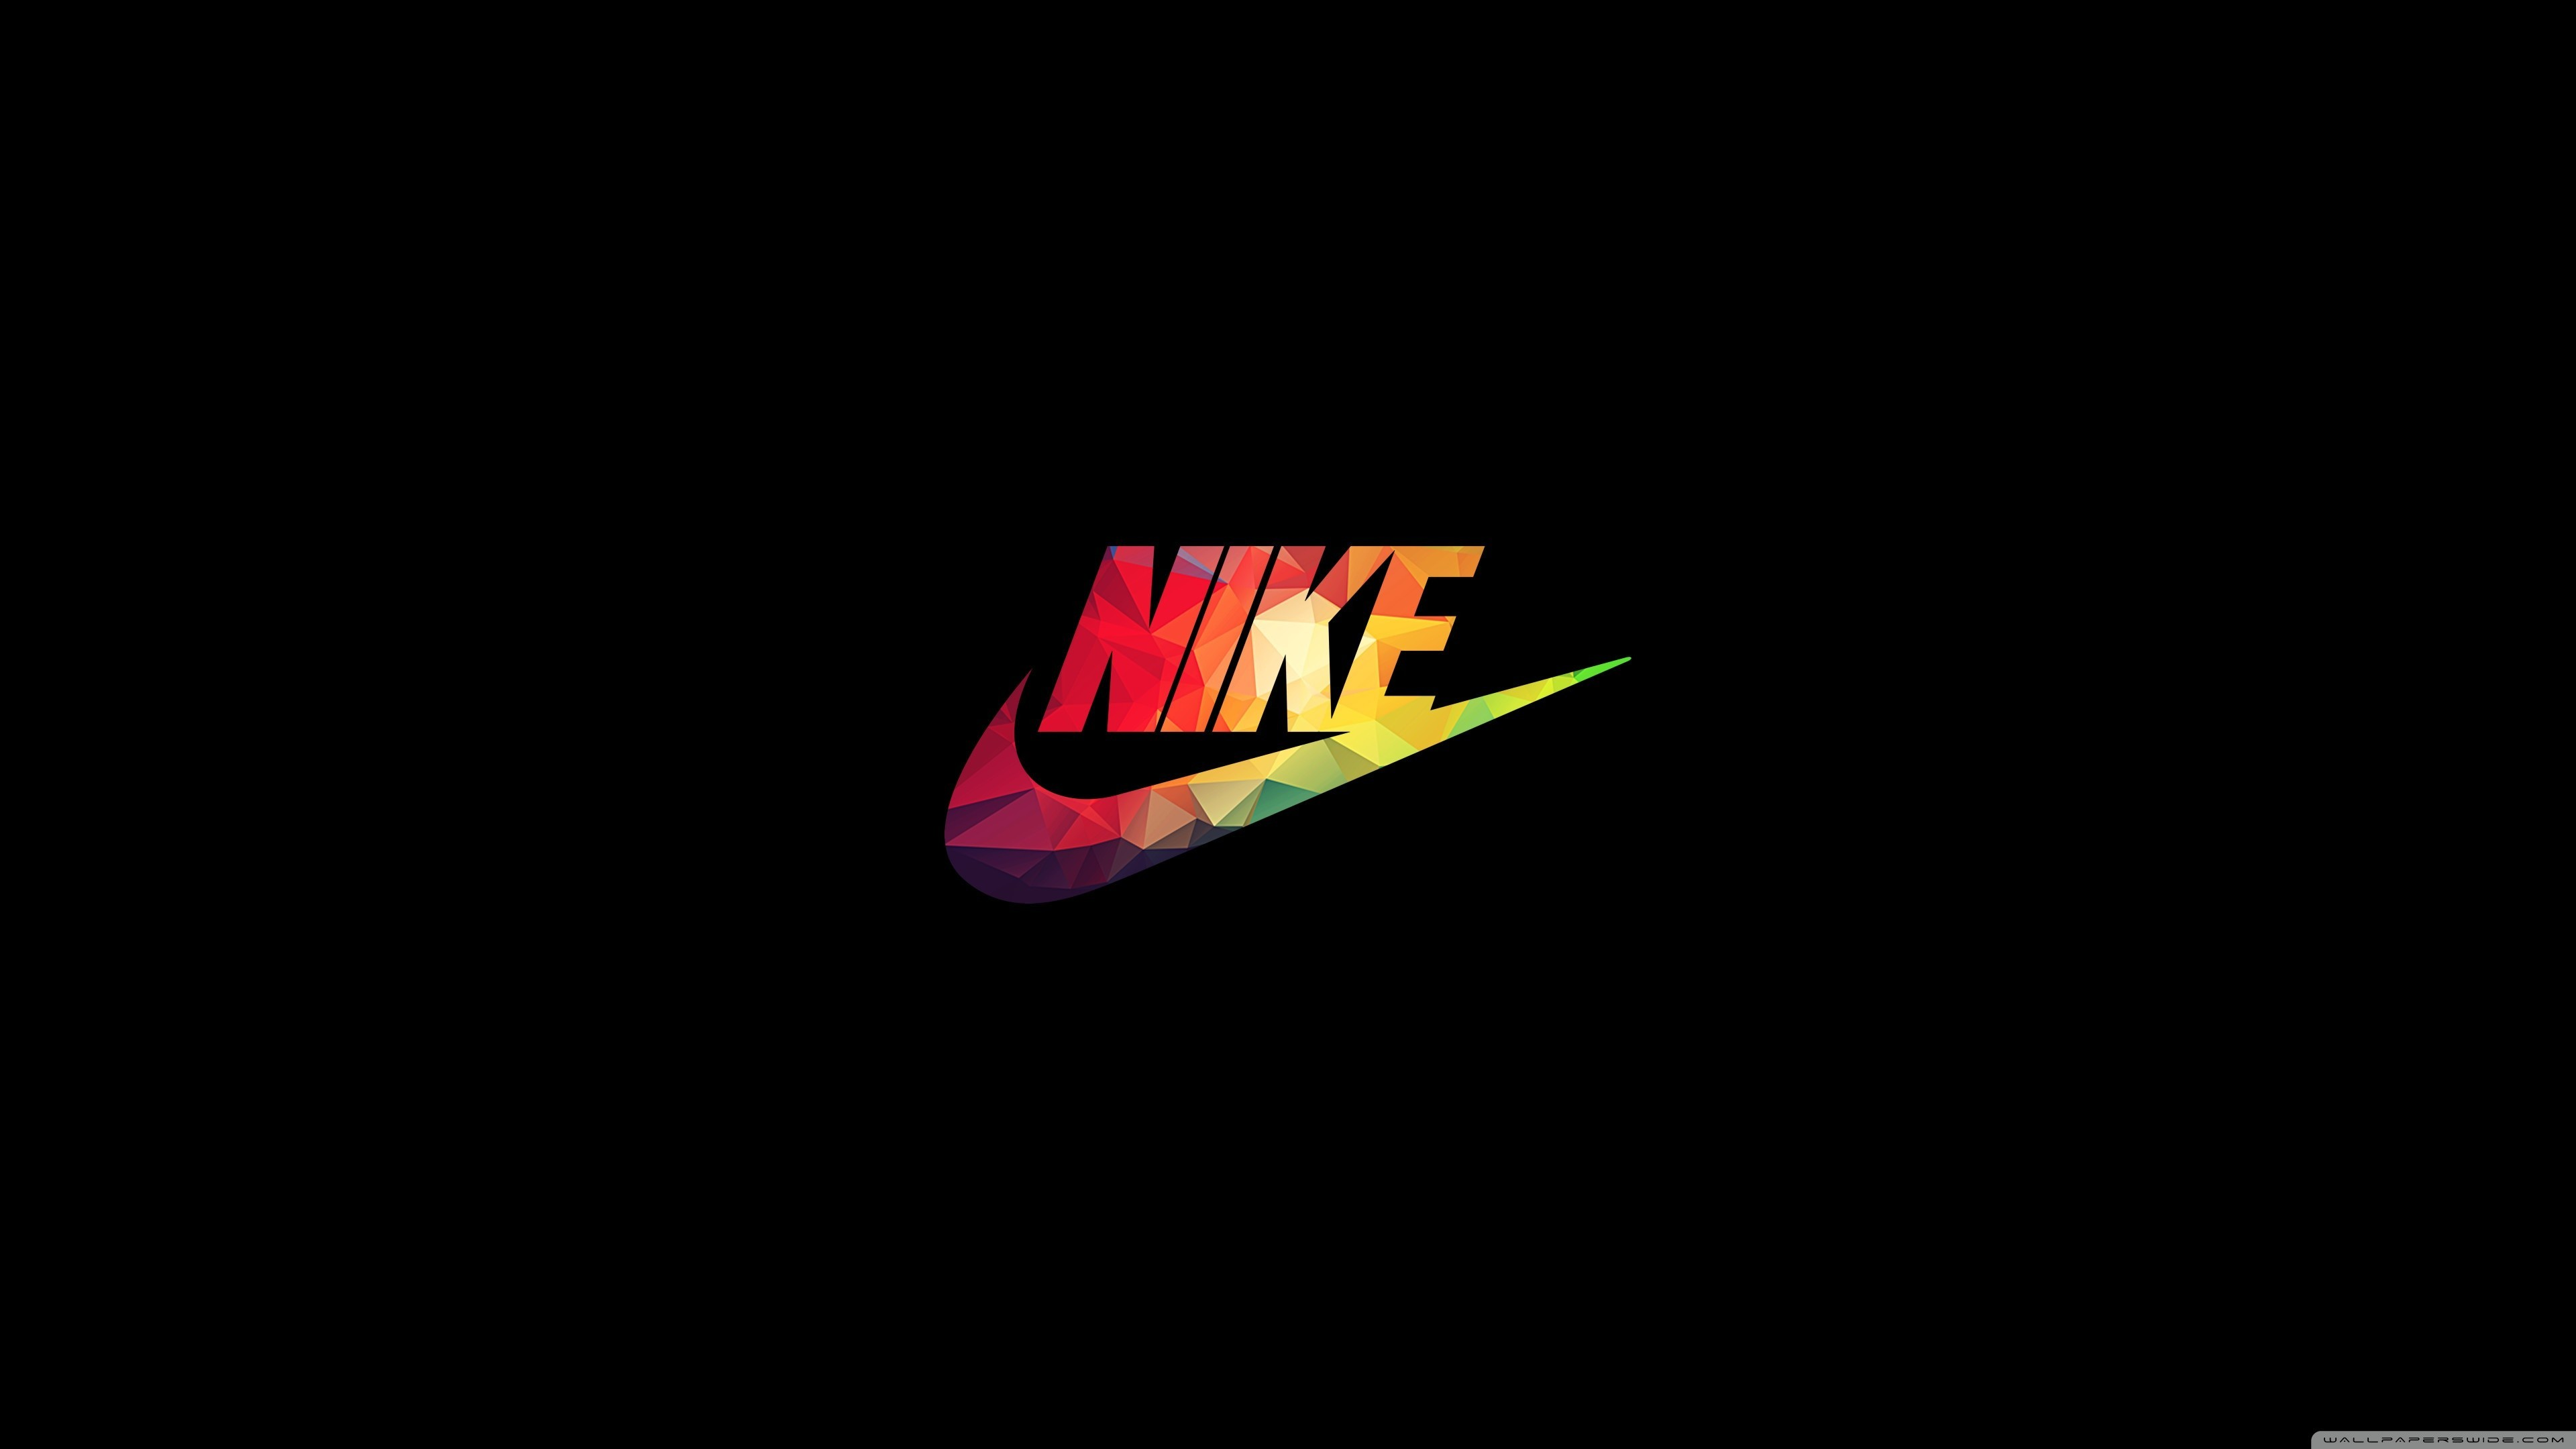 Nike Basketball Wallpaper 2018            Nike Basketball Wallpaper